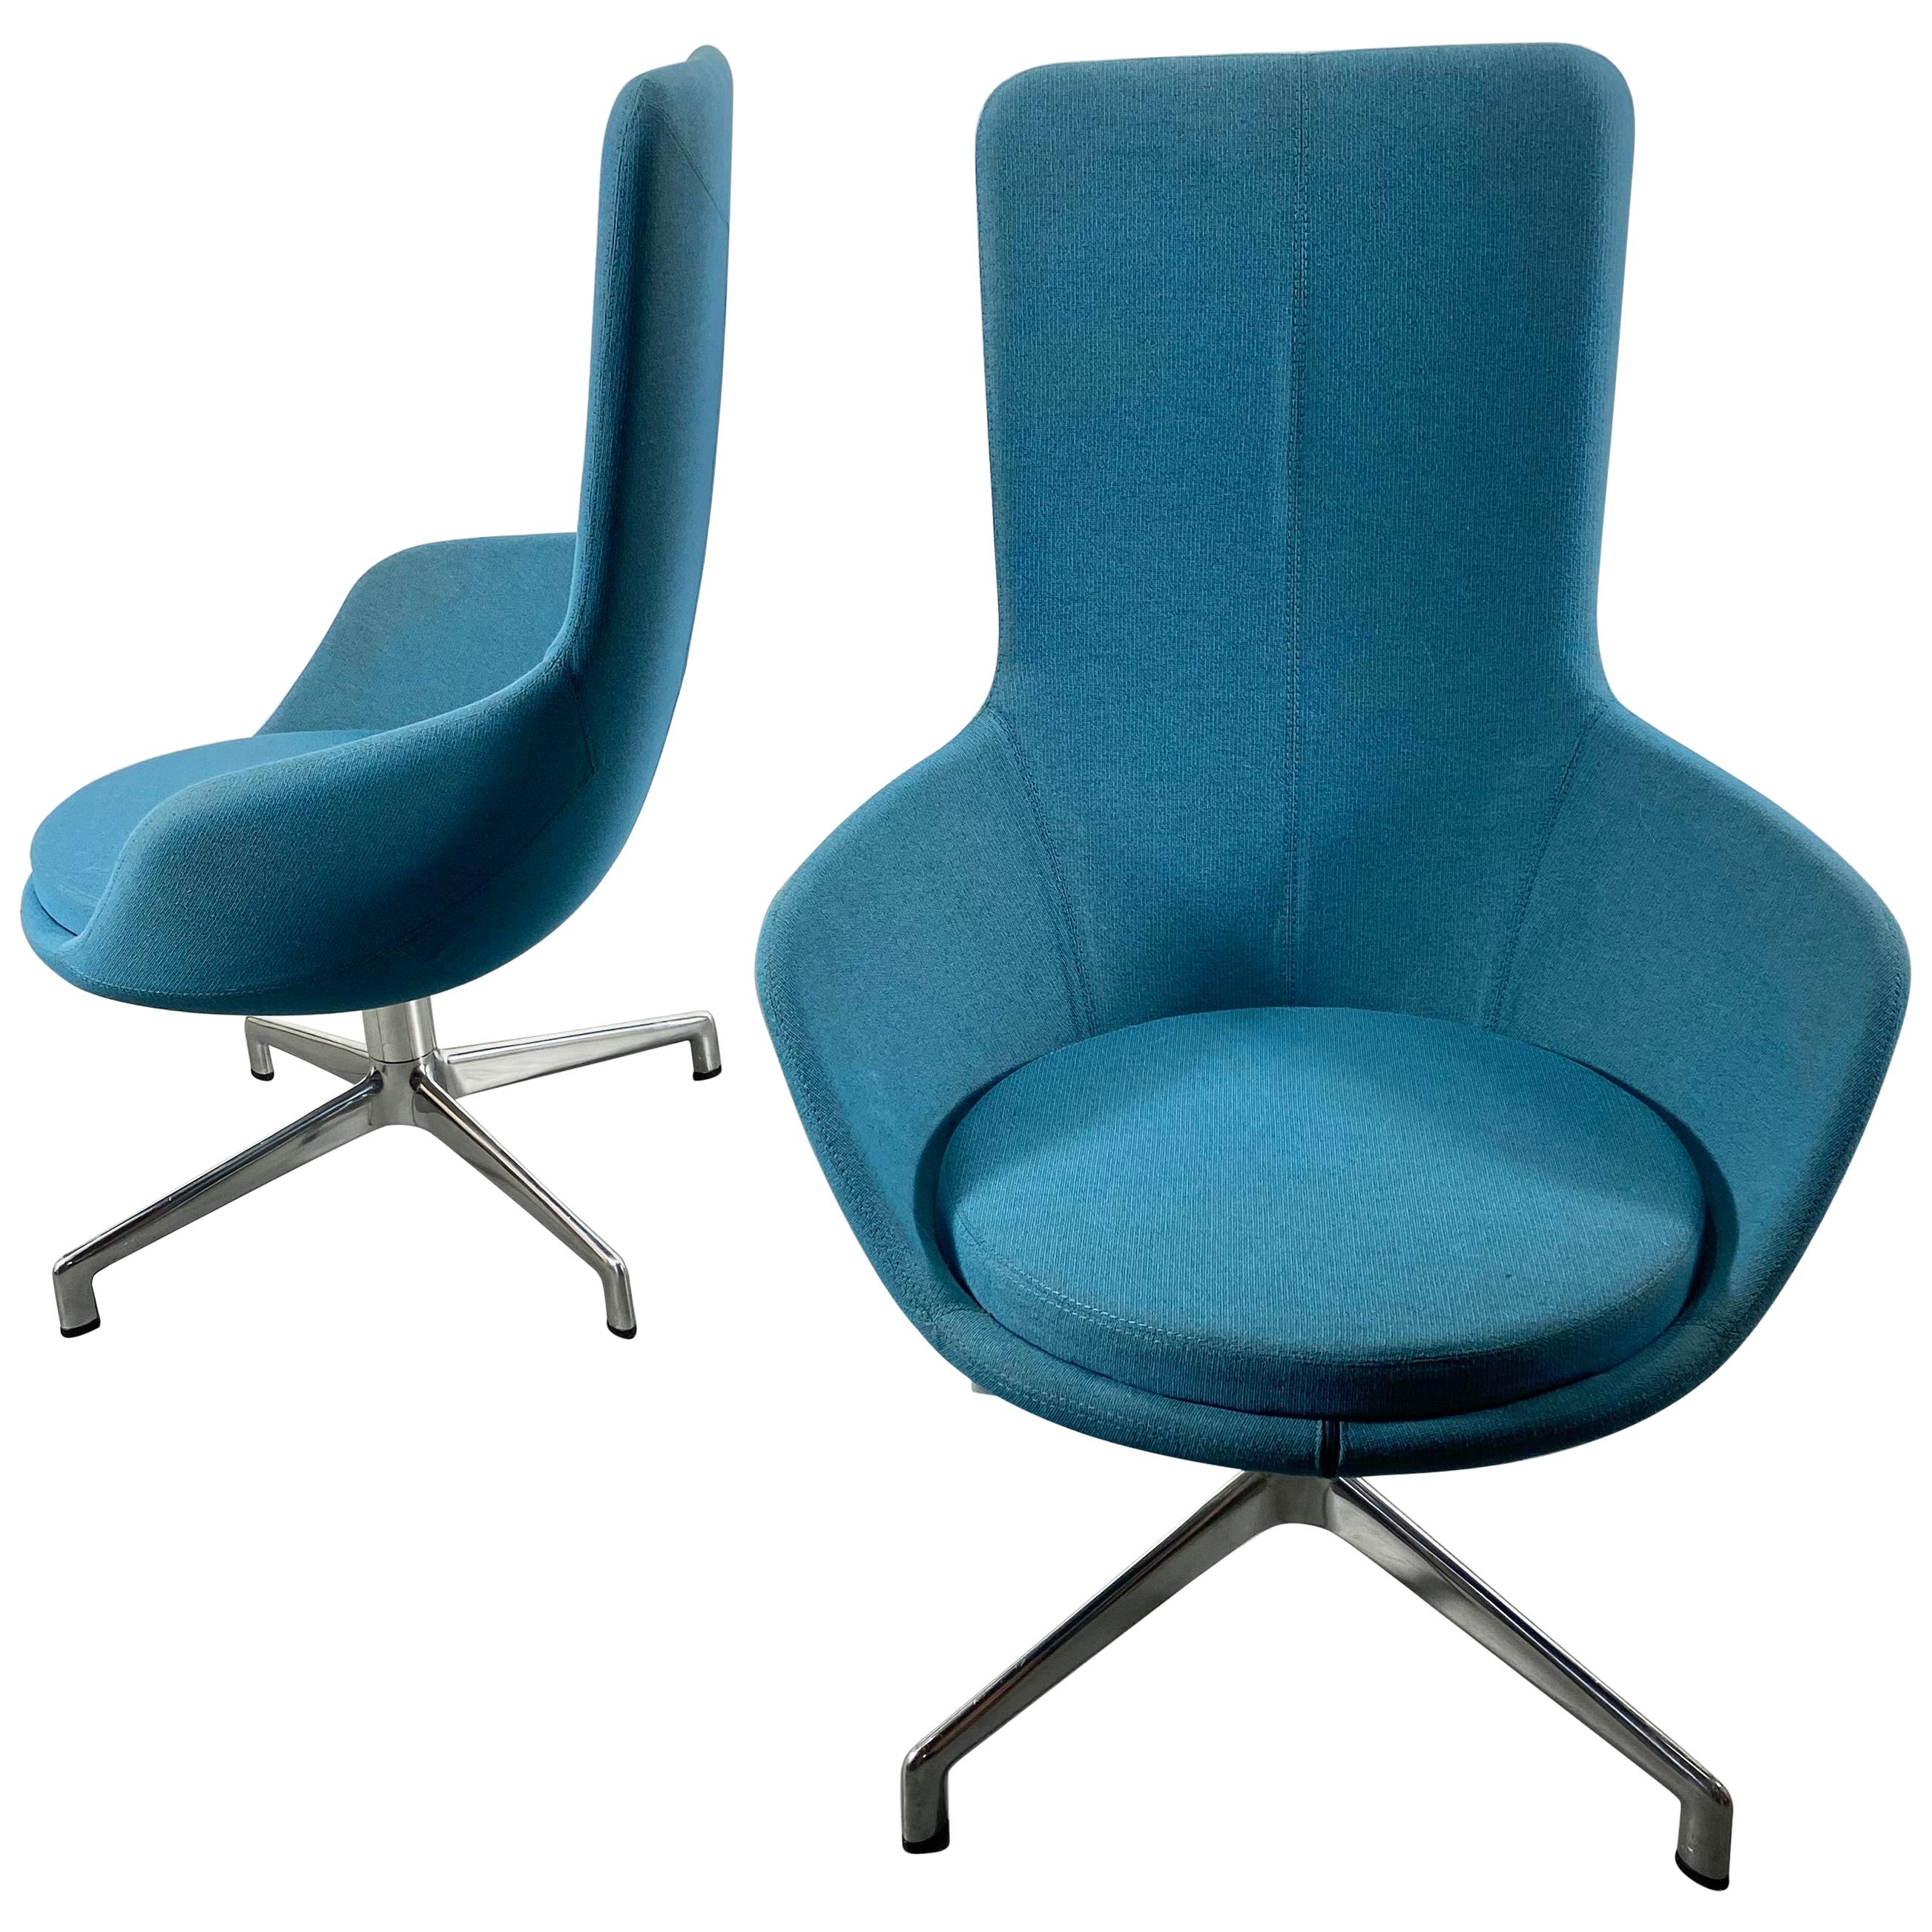 Pair of Post Modernist Lounge Chairs, Juxta Chair by Keilhauer